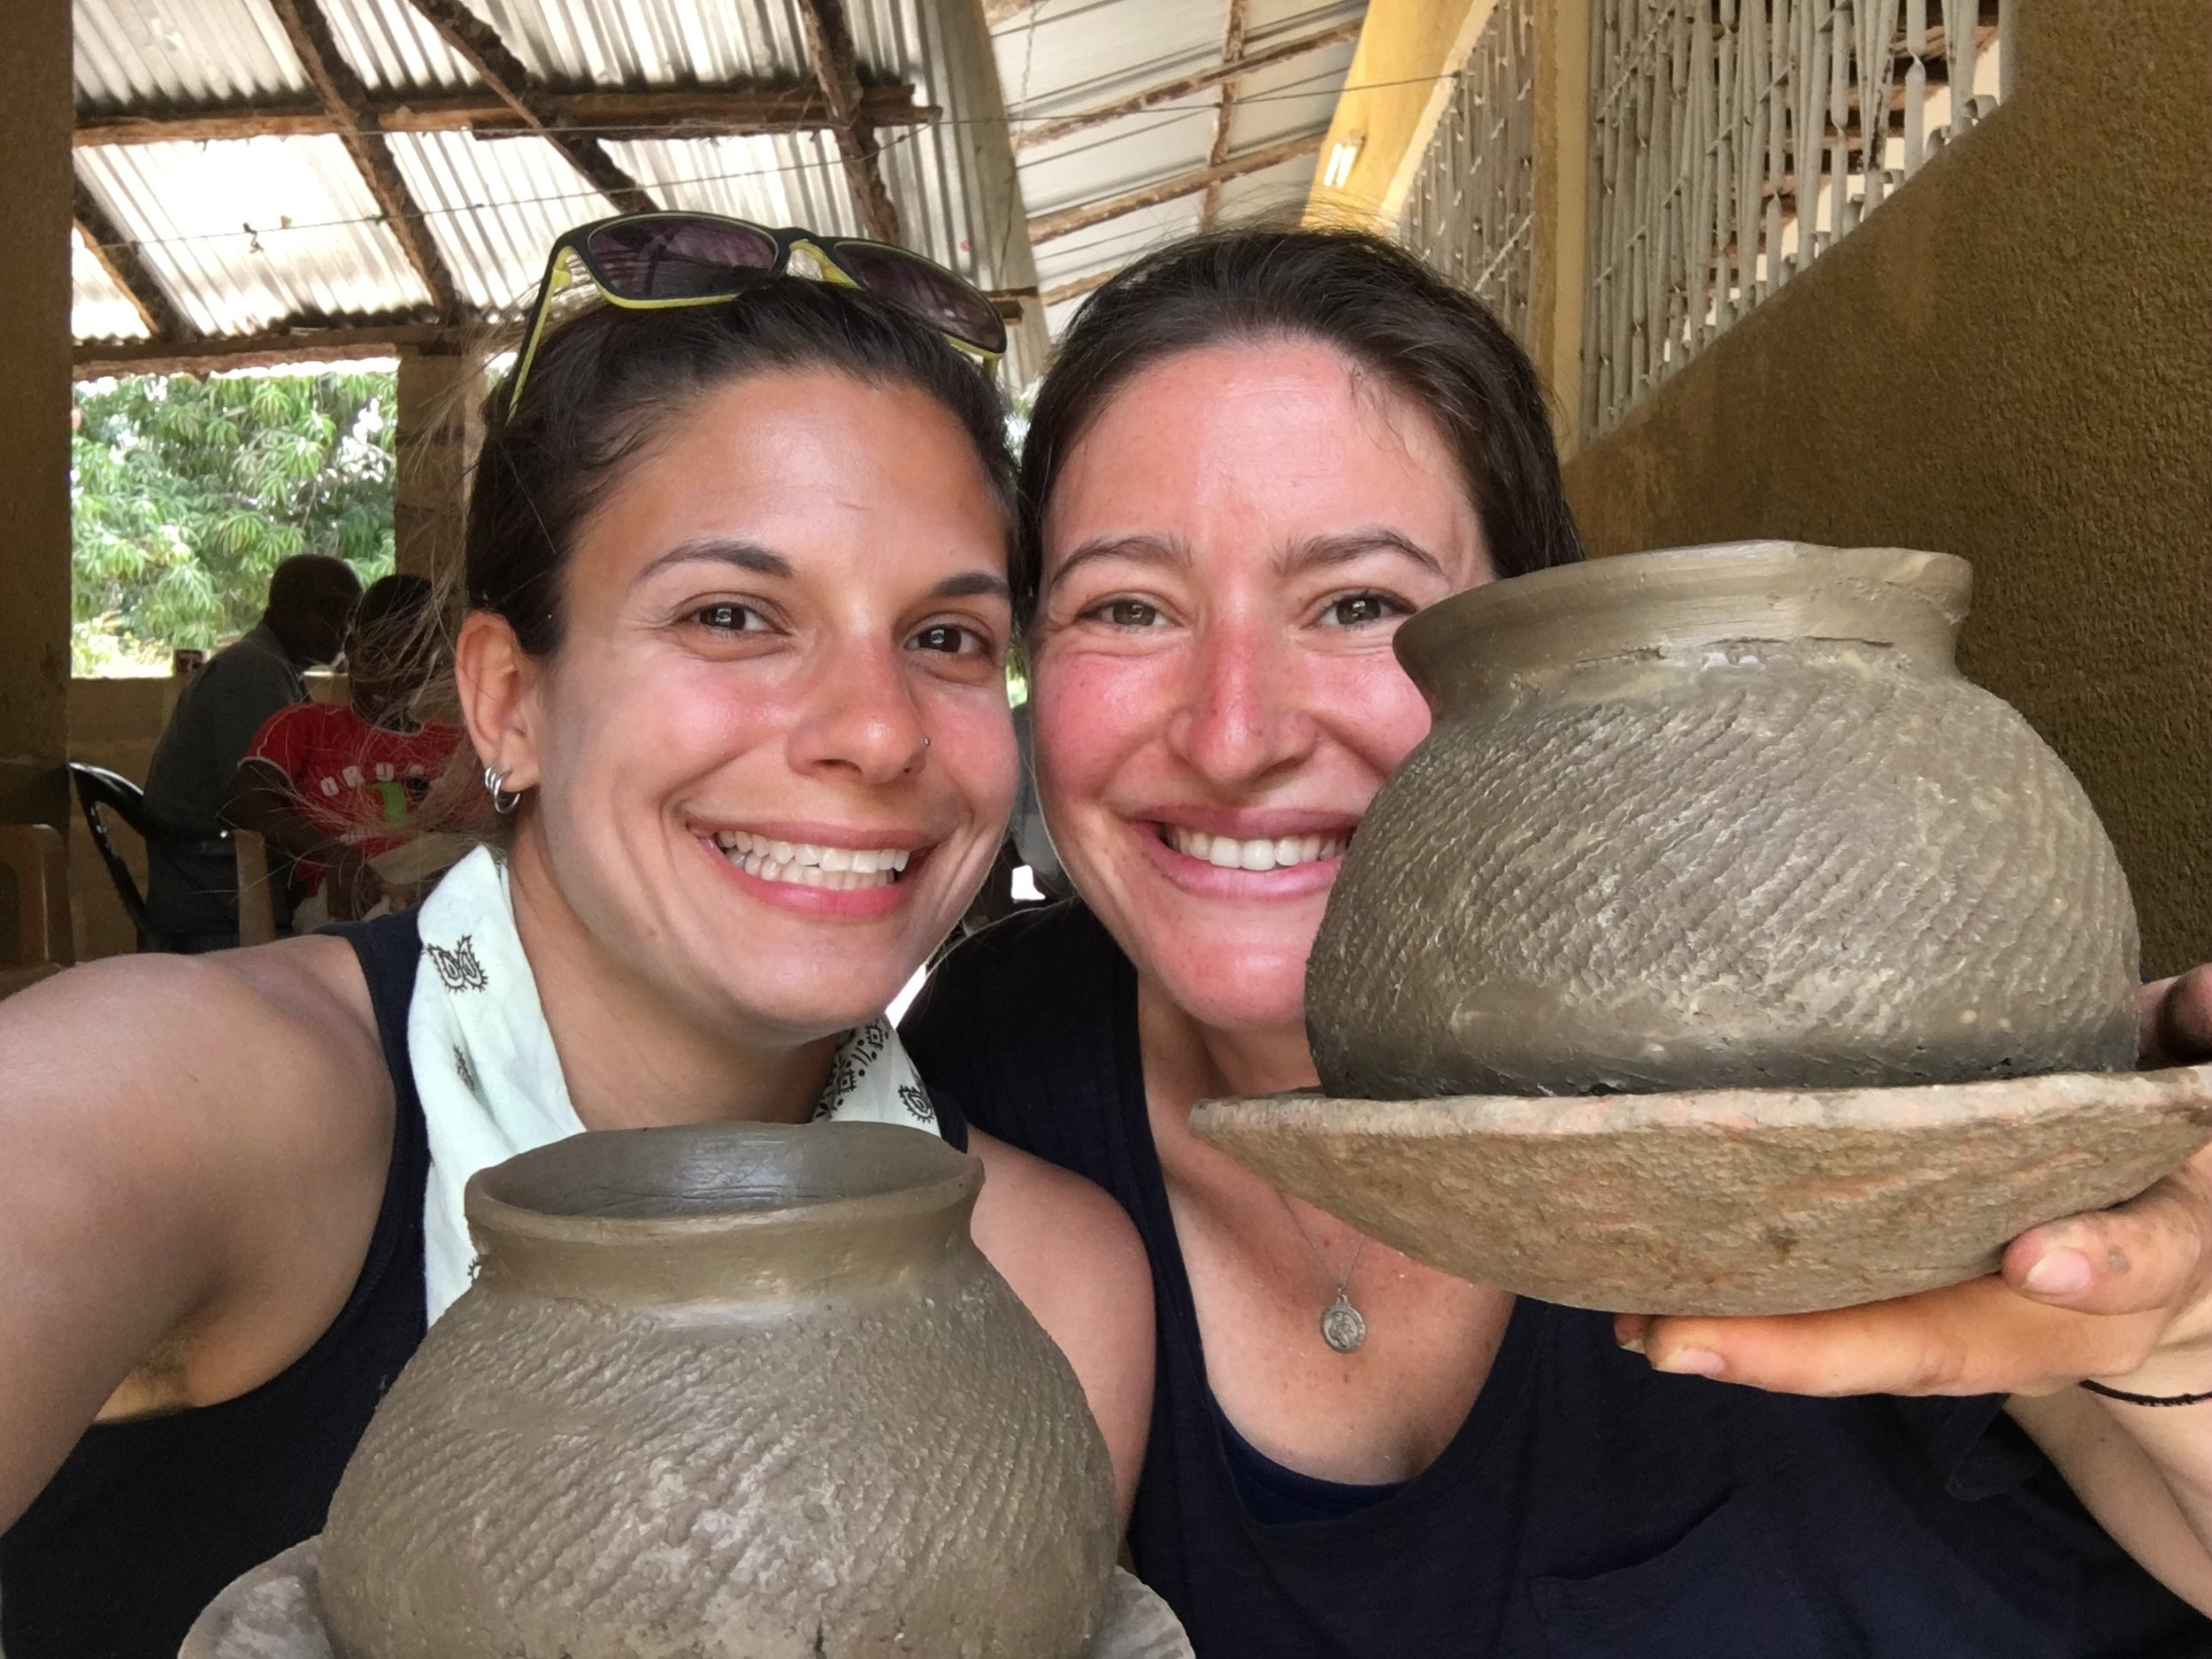 Megan and I with our pots before they're fired.